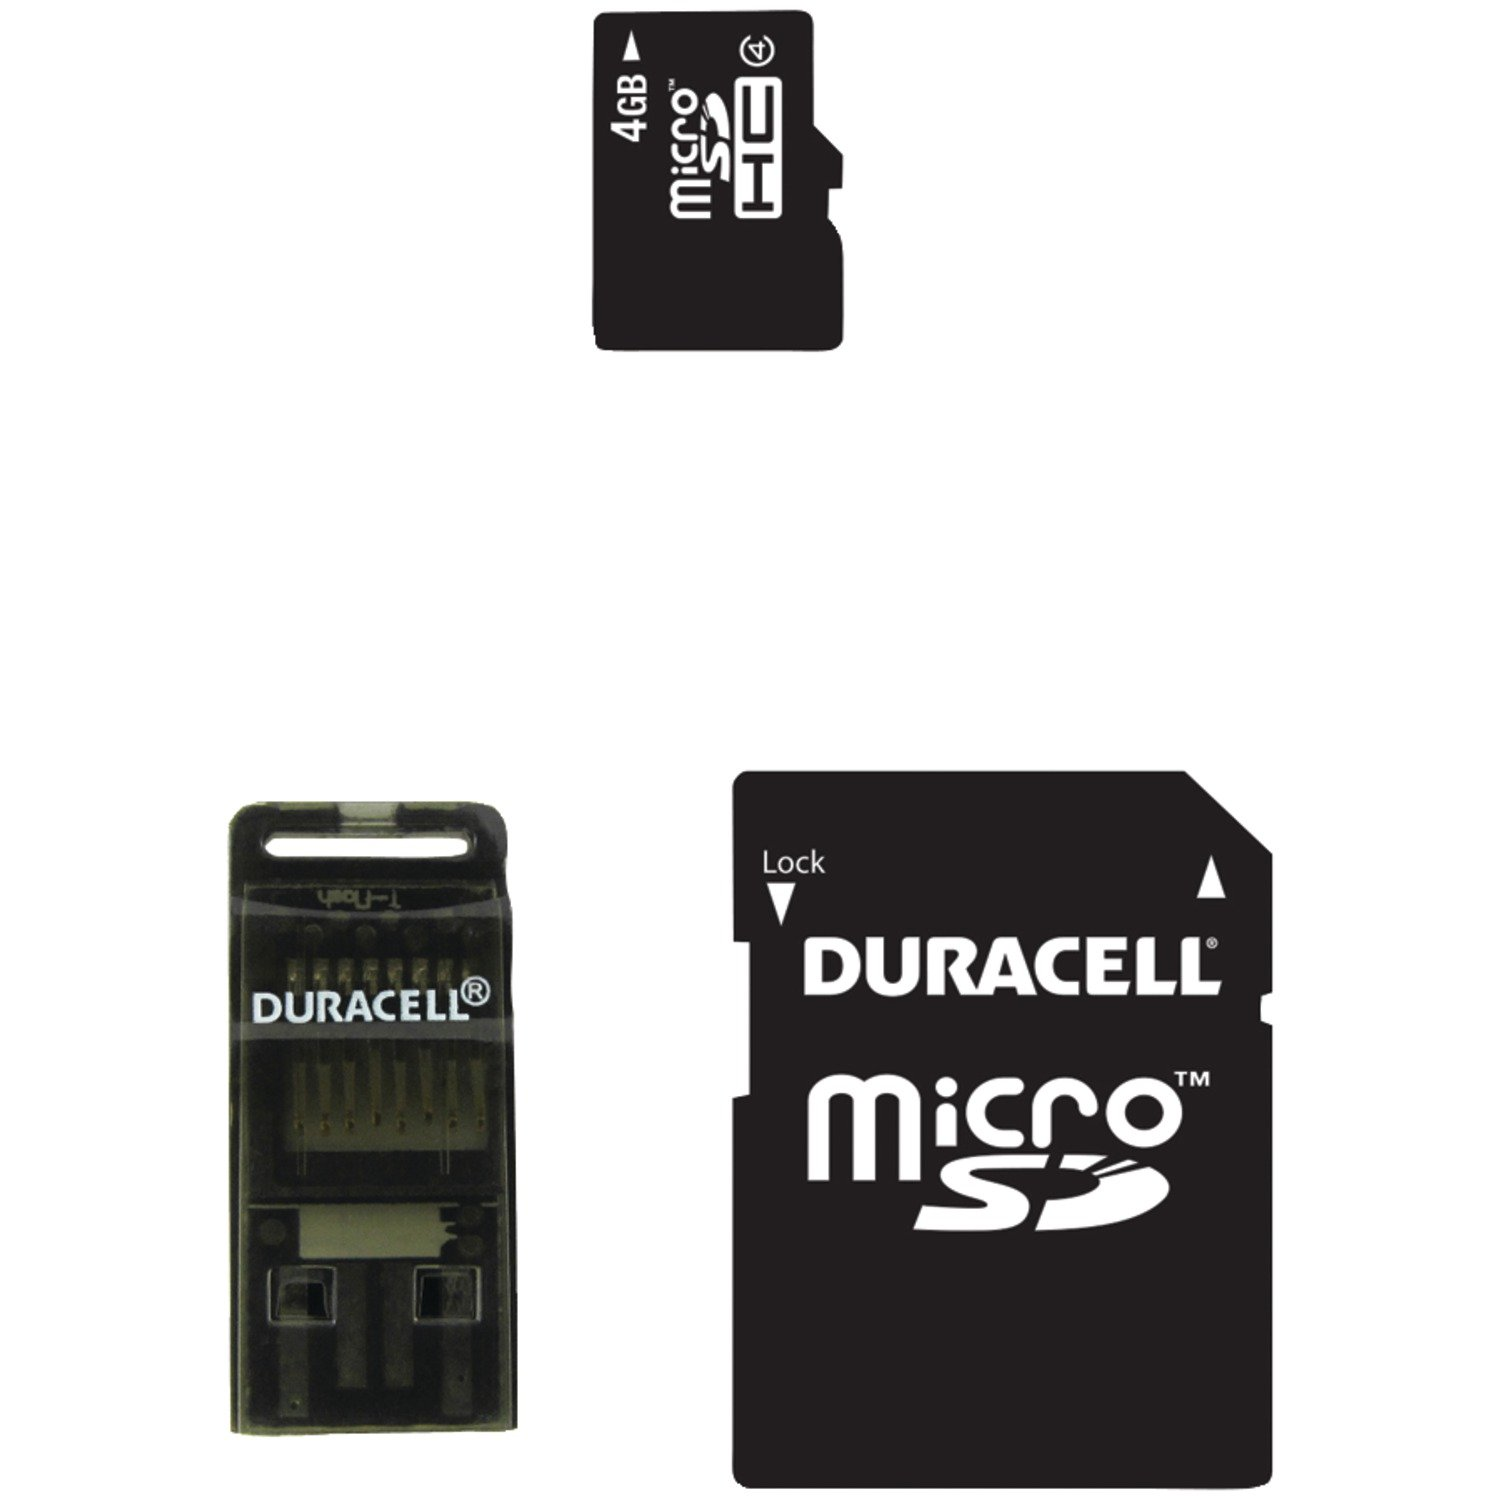 Dane-Elec 4 GB Class 4 Microsd Card (DA-3IN1-04G-R)